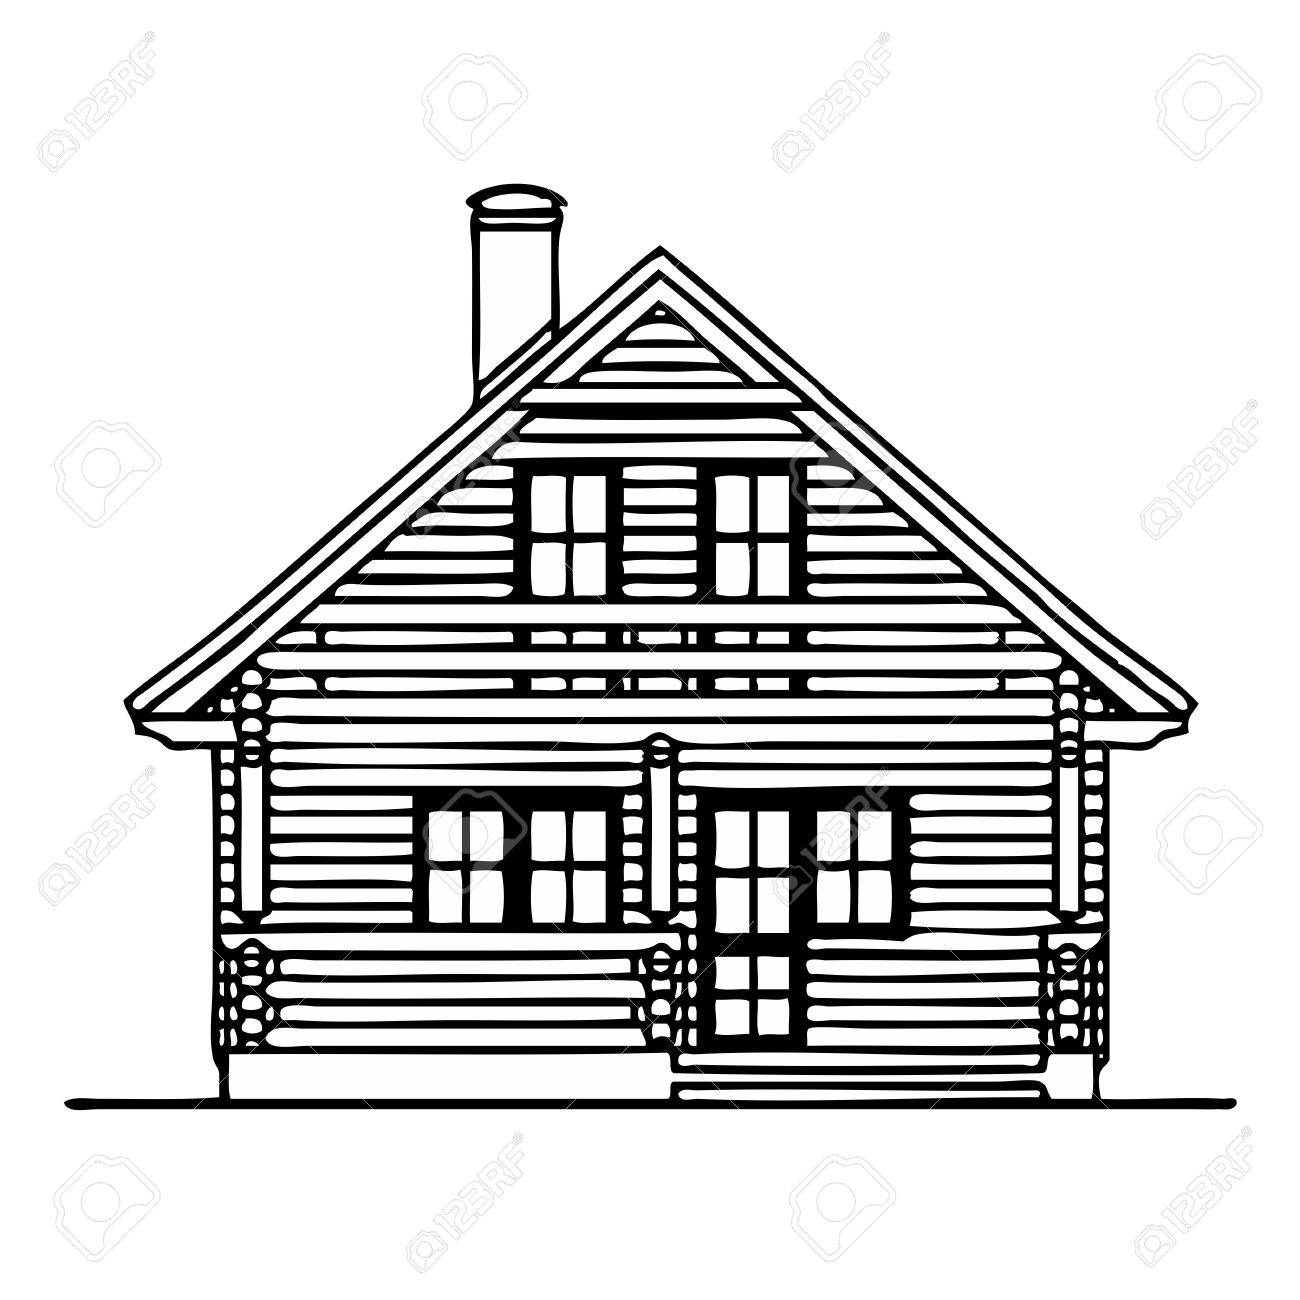 Cottage Clipart Black And White Wooden House Stock Vector 13767366